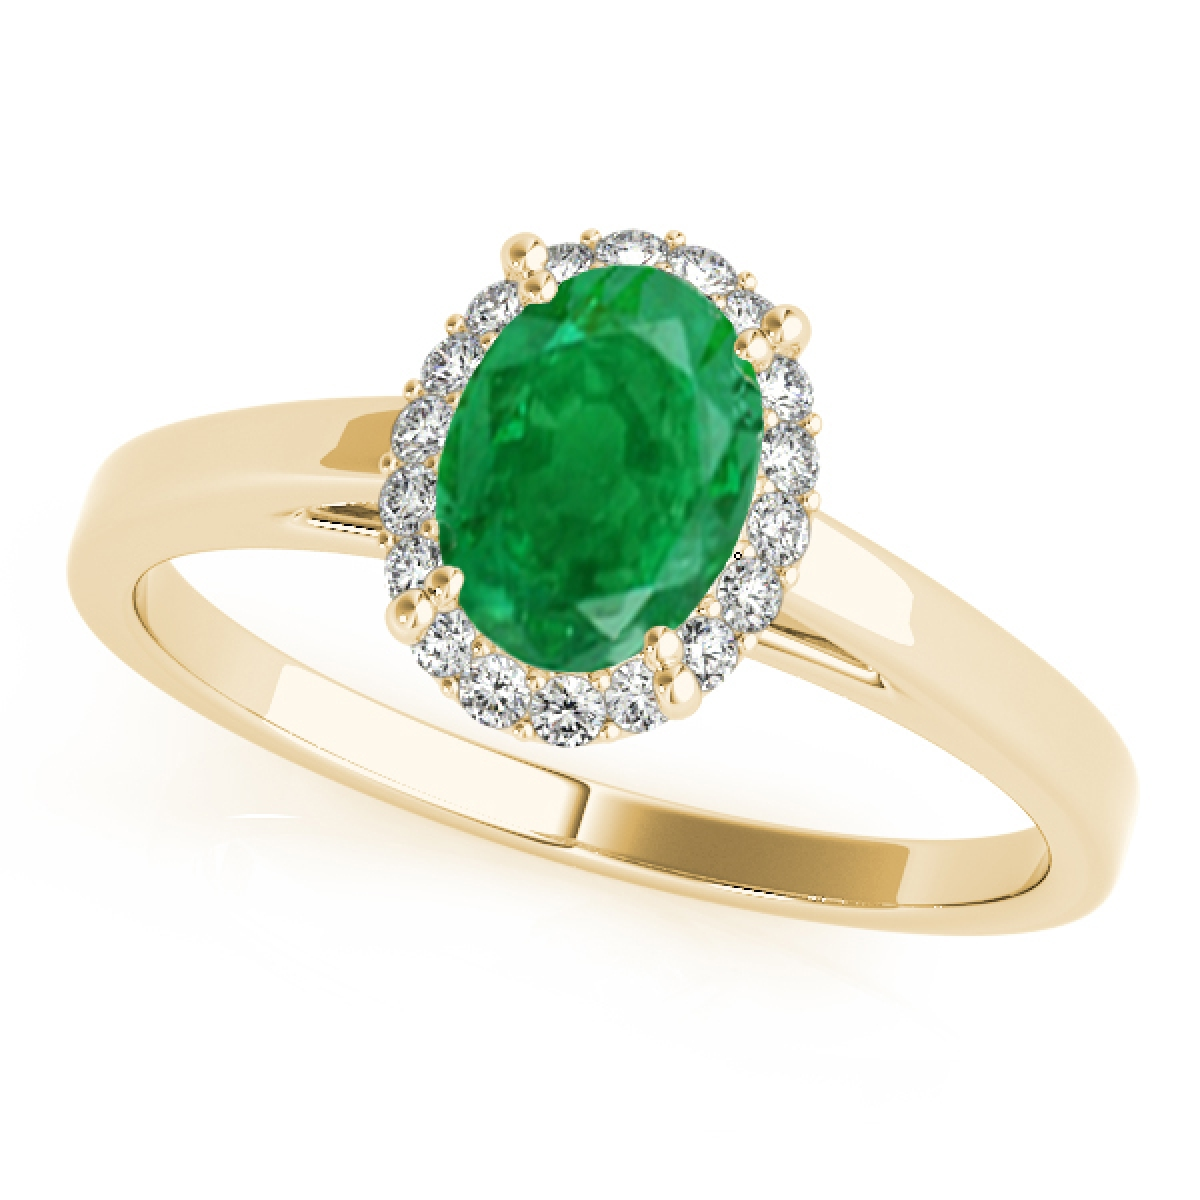 0.55 Ct. Diamond & Oval Shaped Emerald Engagement Ring -10K Gold